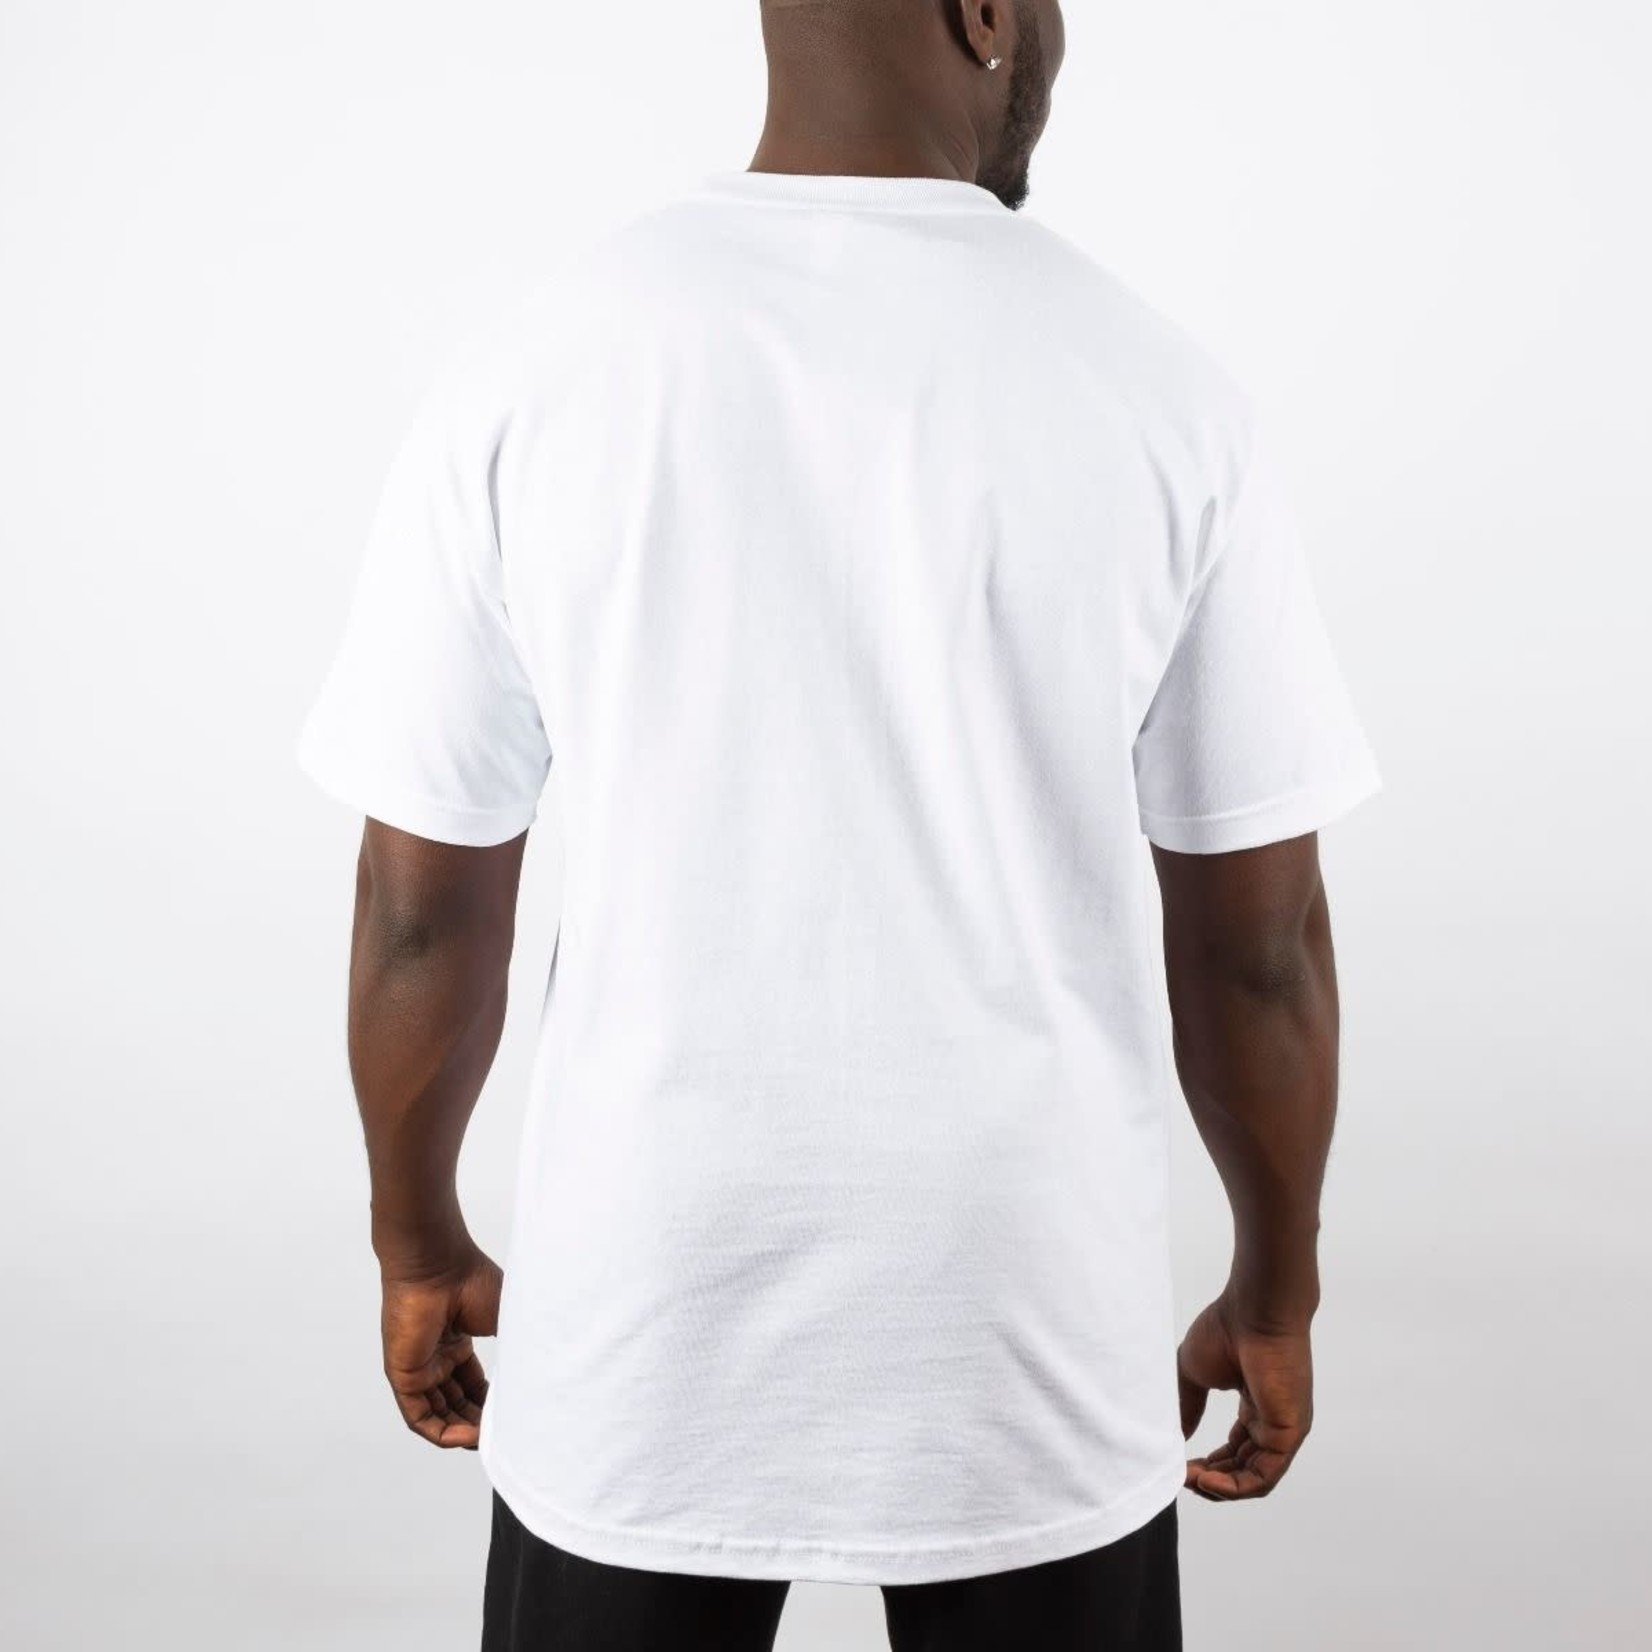 WLKN WLKN : The Country T-Shirt White